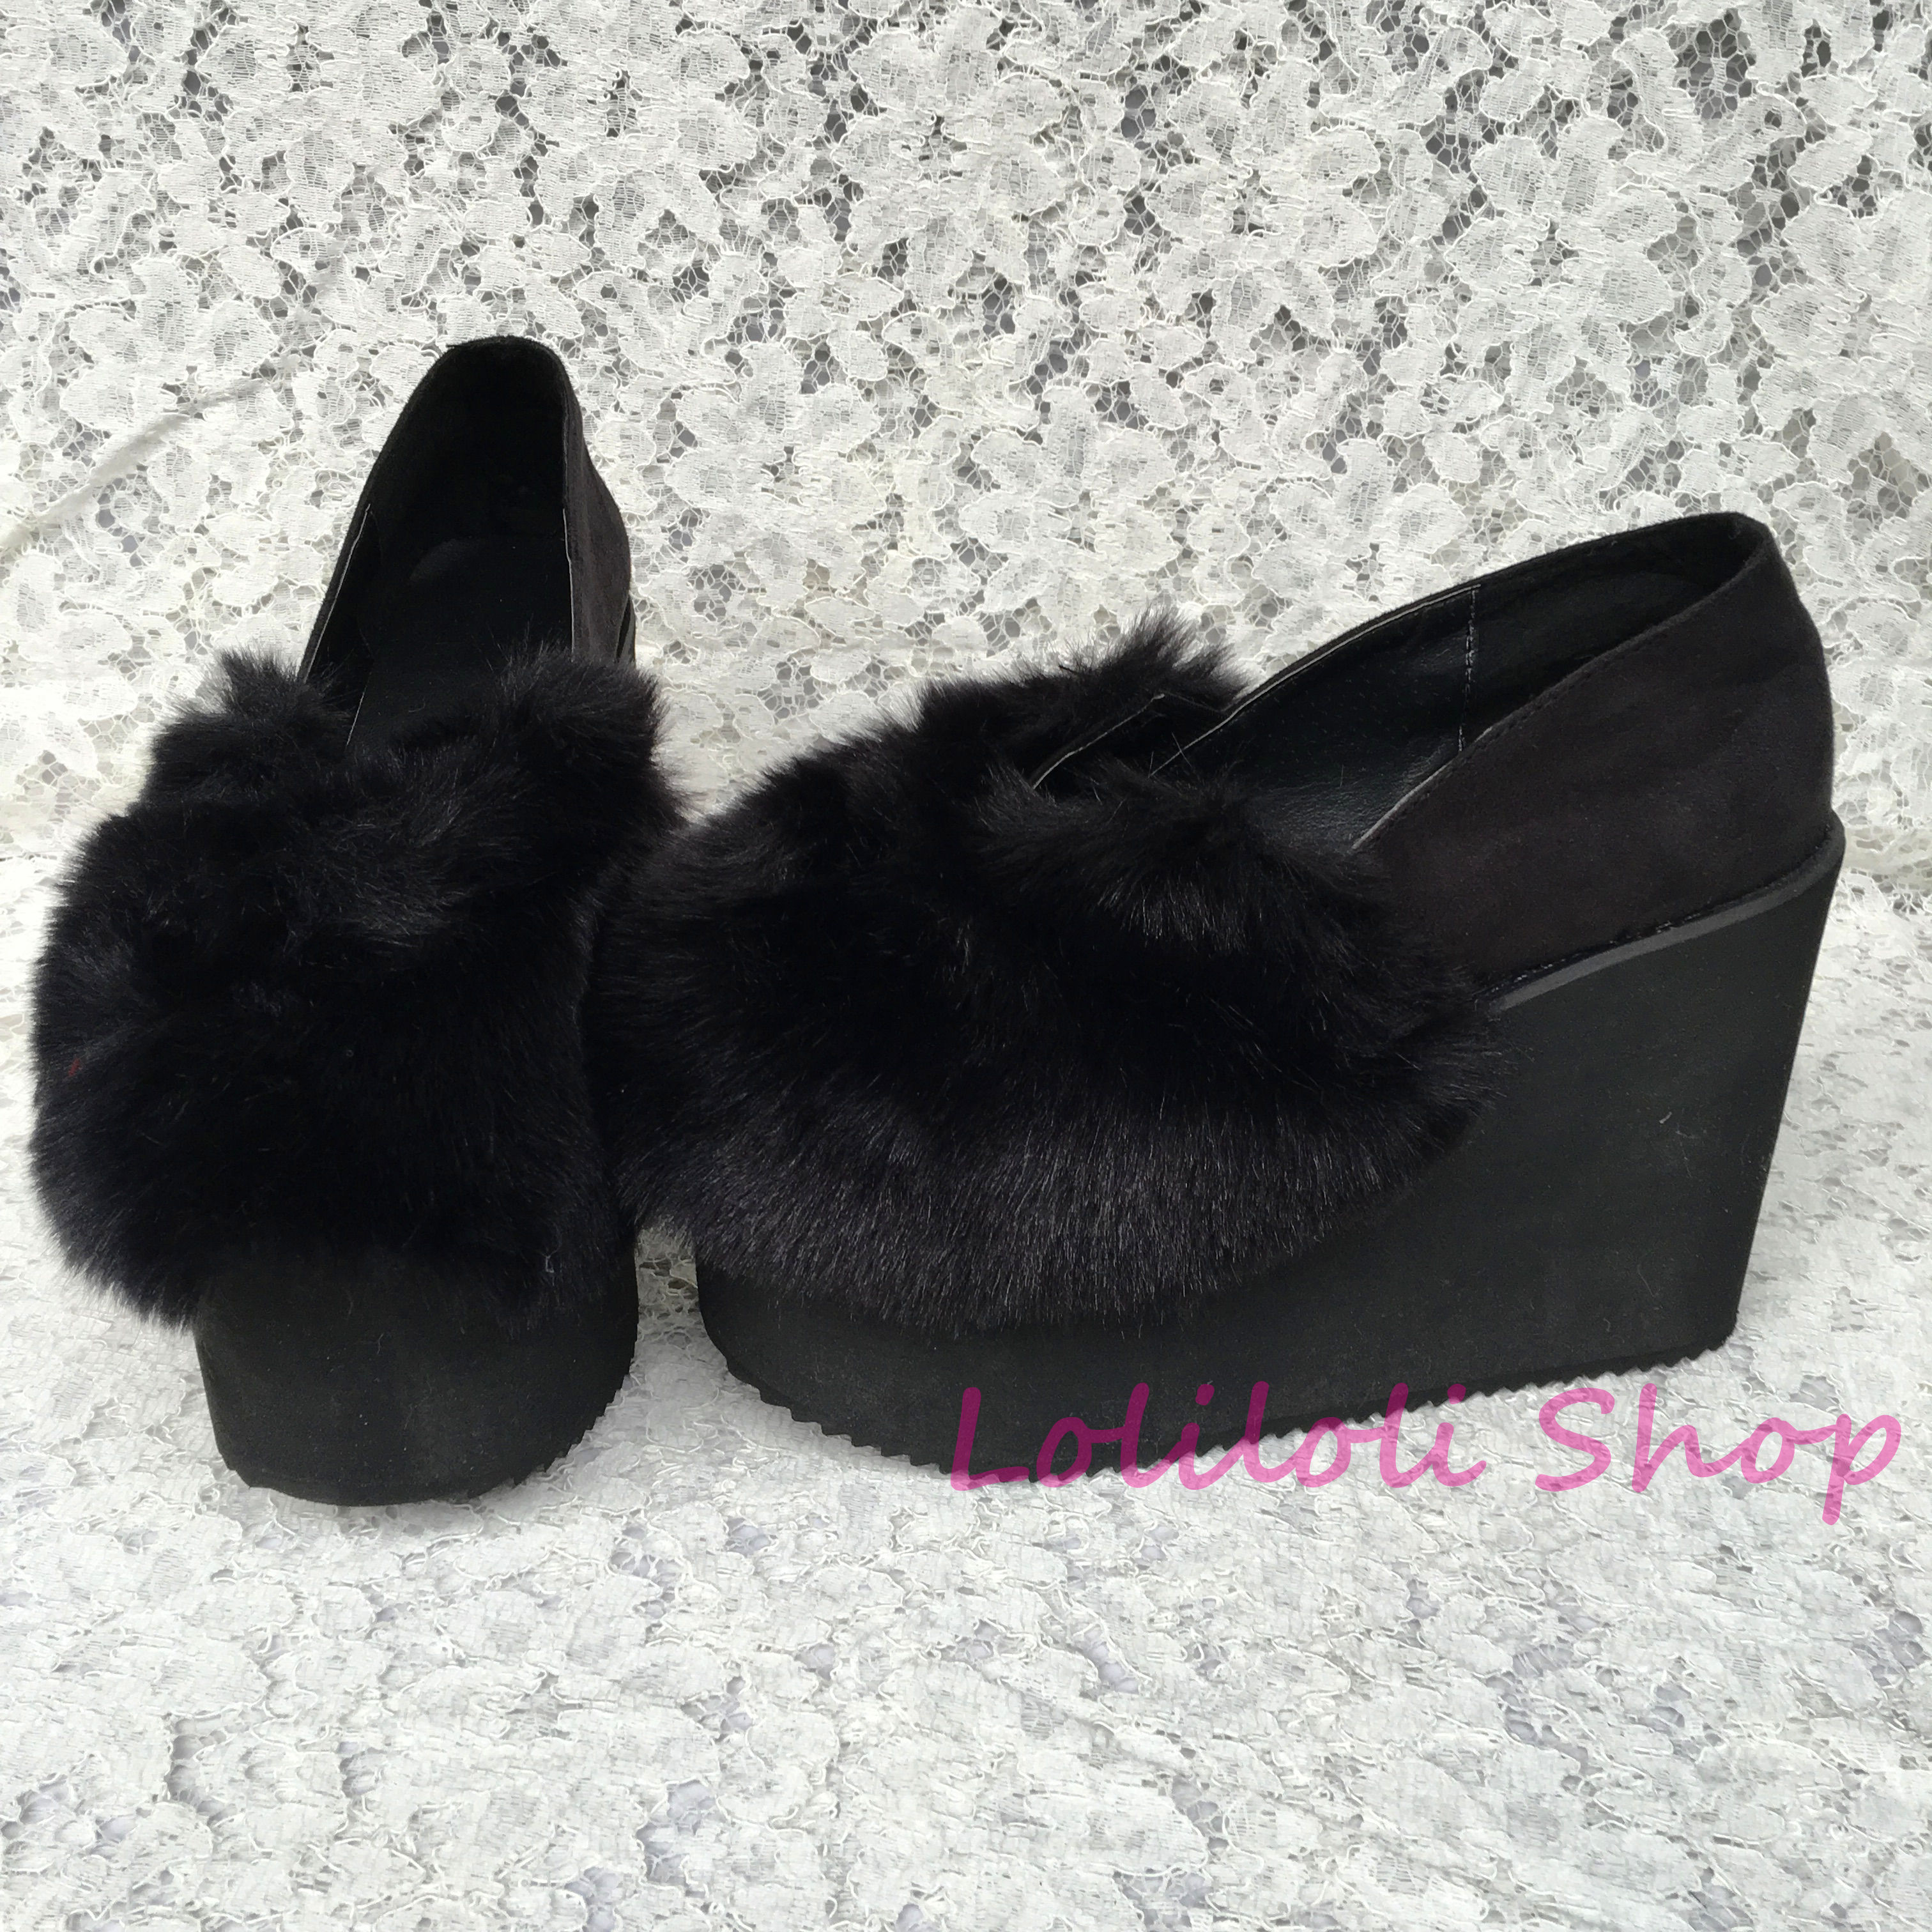 Princess sweet lolita shoes Lolilloliyoyo antaina Japanese design cos shoes custom thick bottom black flock flat shoes 5002n-1 цена